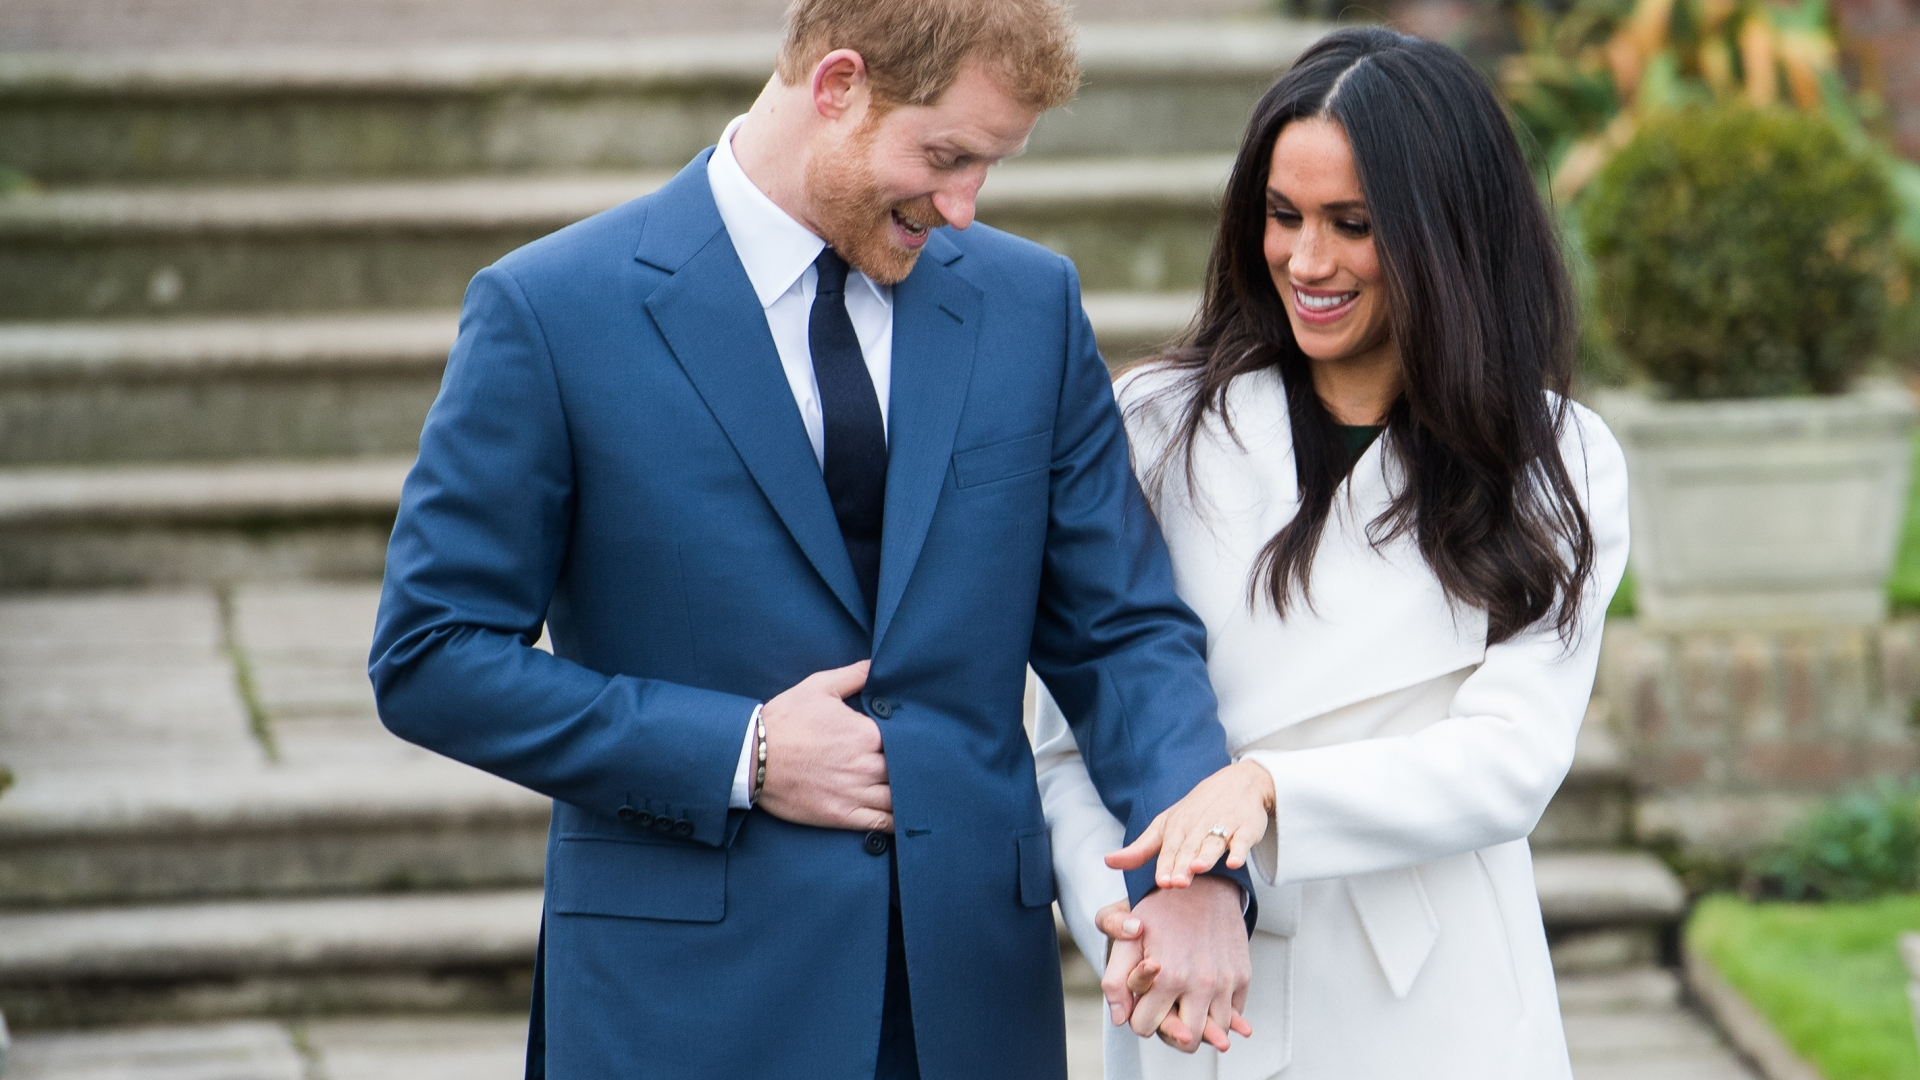 Prince Harry and Meghan Markle announcing their engagement at the Sunken Gardens at Kensington Palace, November 27, 2017. (Credit: Samir Hussein/Samir Hussein/WireImage)